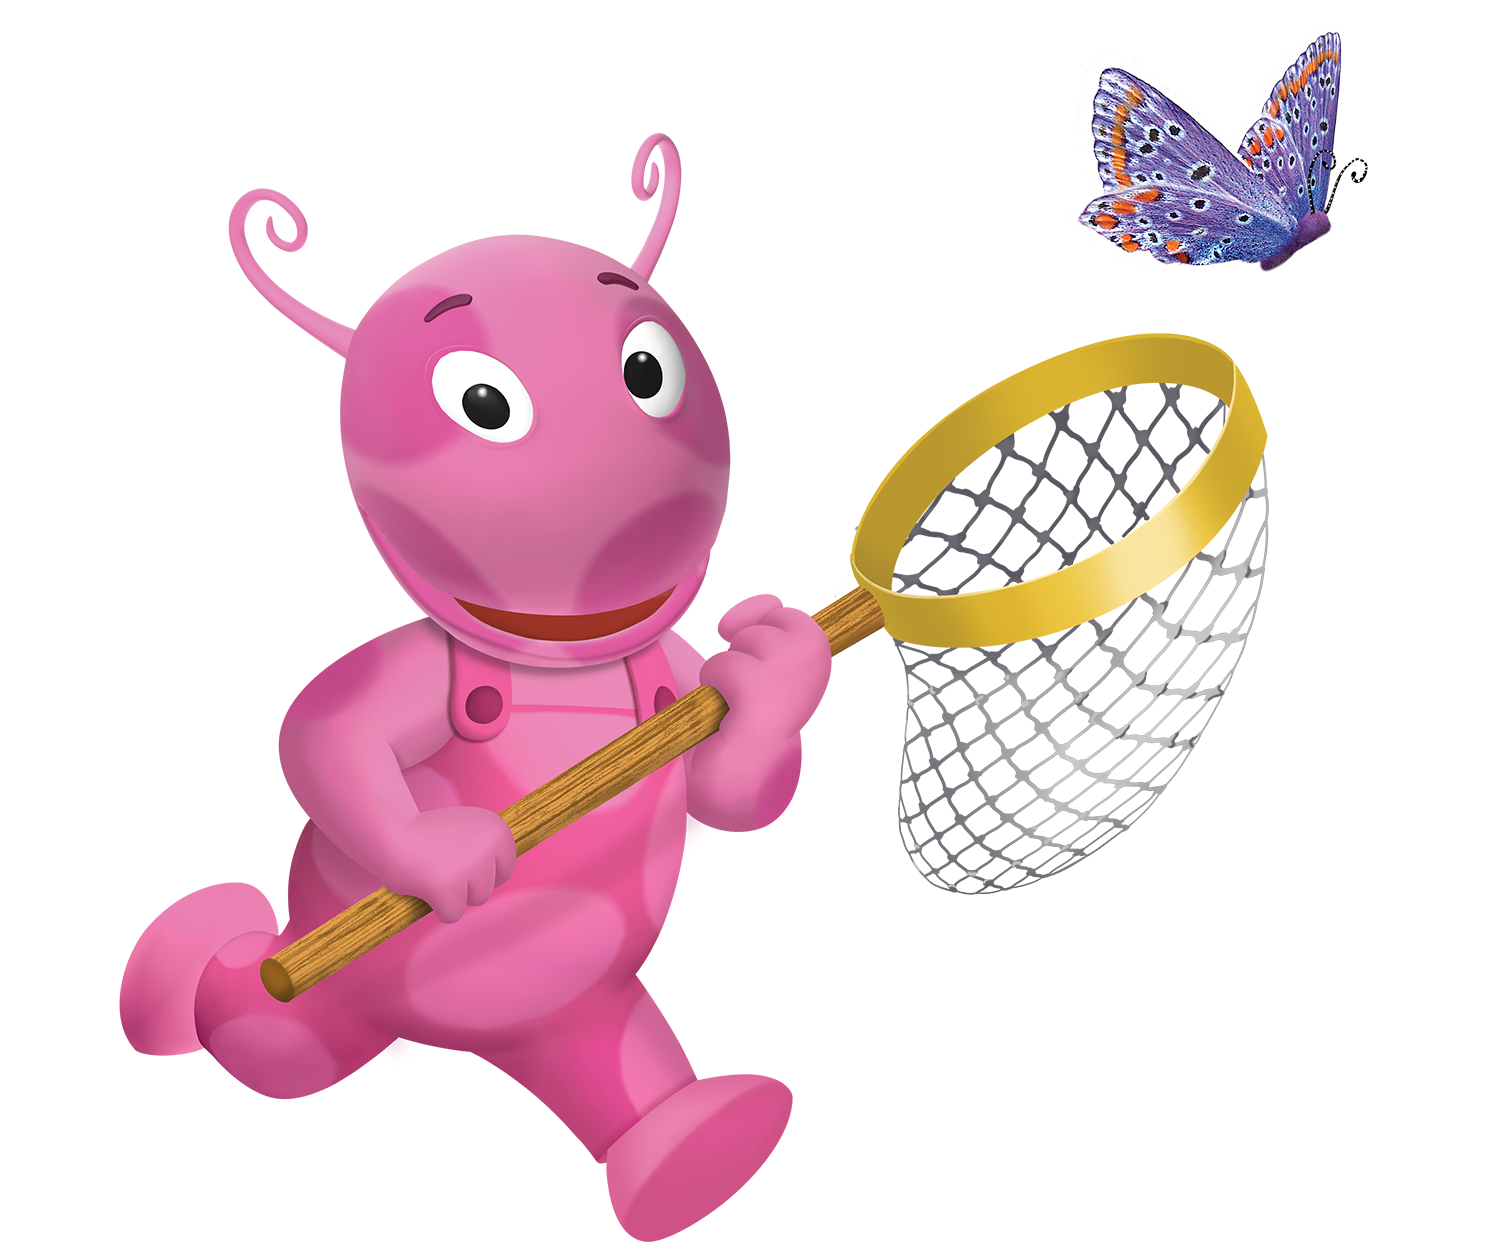 Uncategorized Pink Backyardigan uniquaimages the backyardigans wiki fandom powered by wikia uniqua butterfly